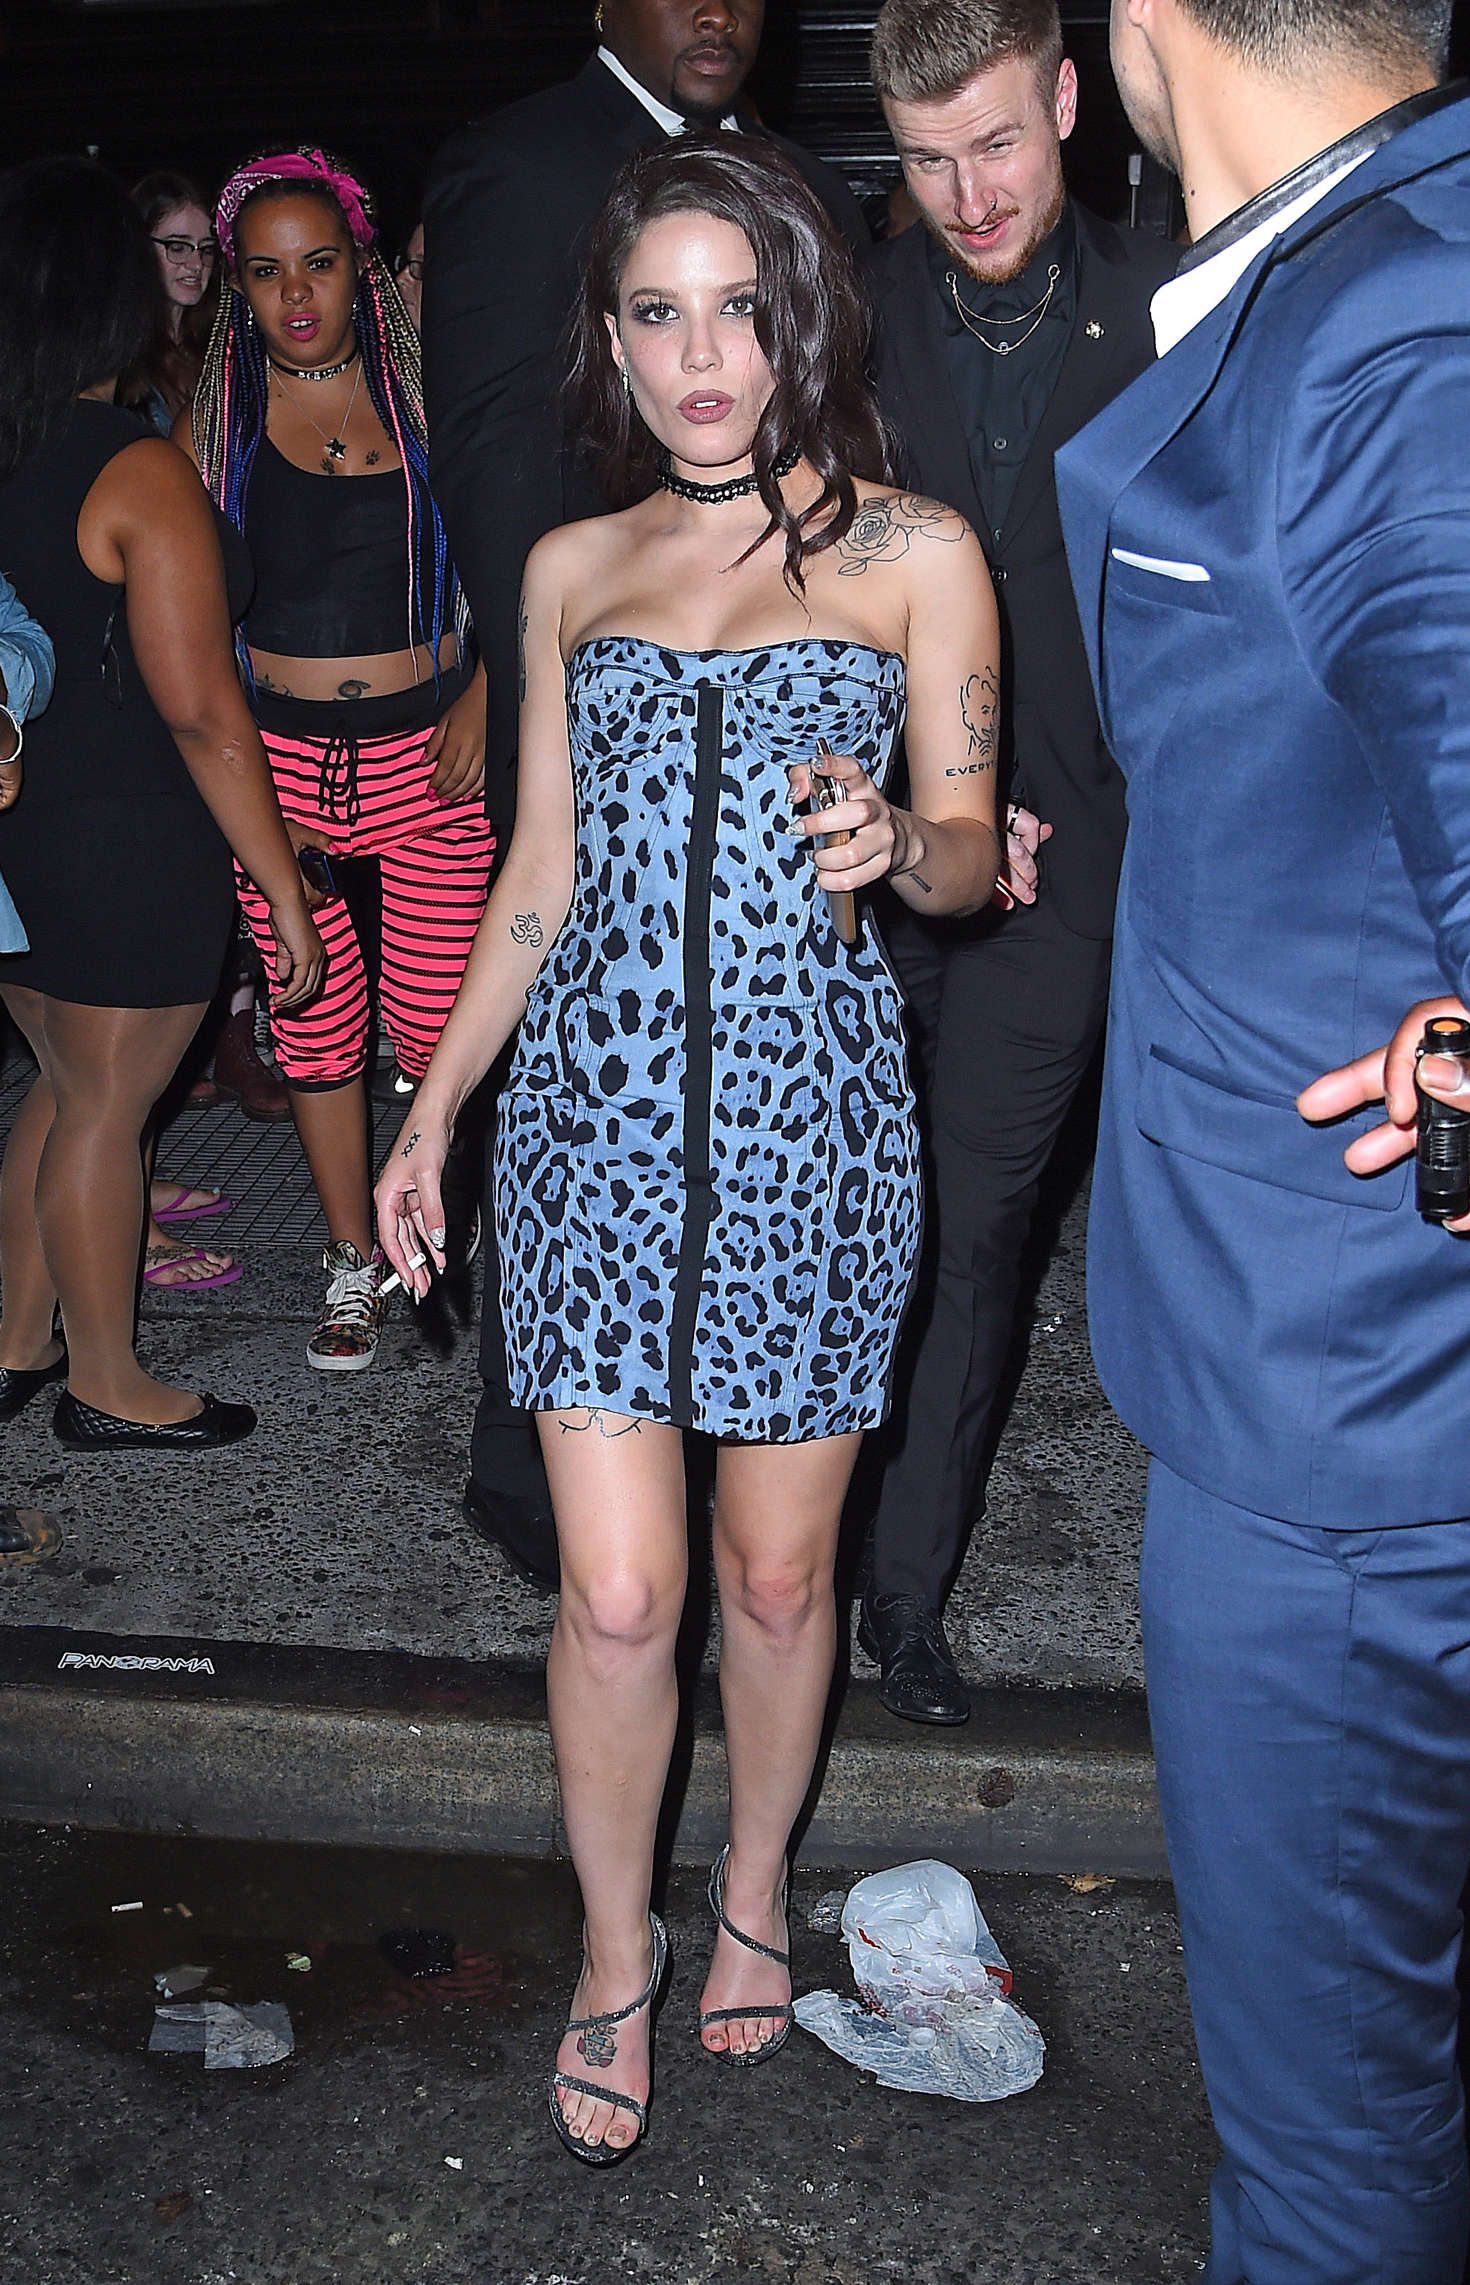 Halsey in Mini Dress at Up and Down Club in NYC